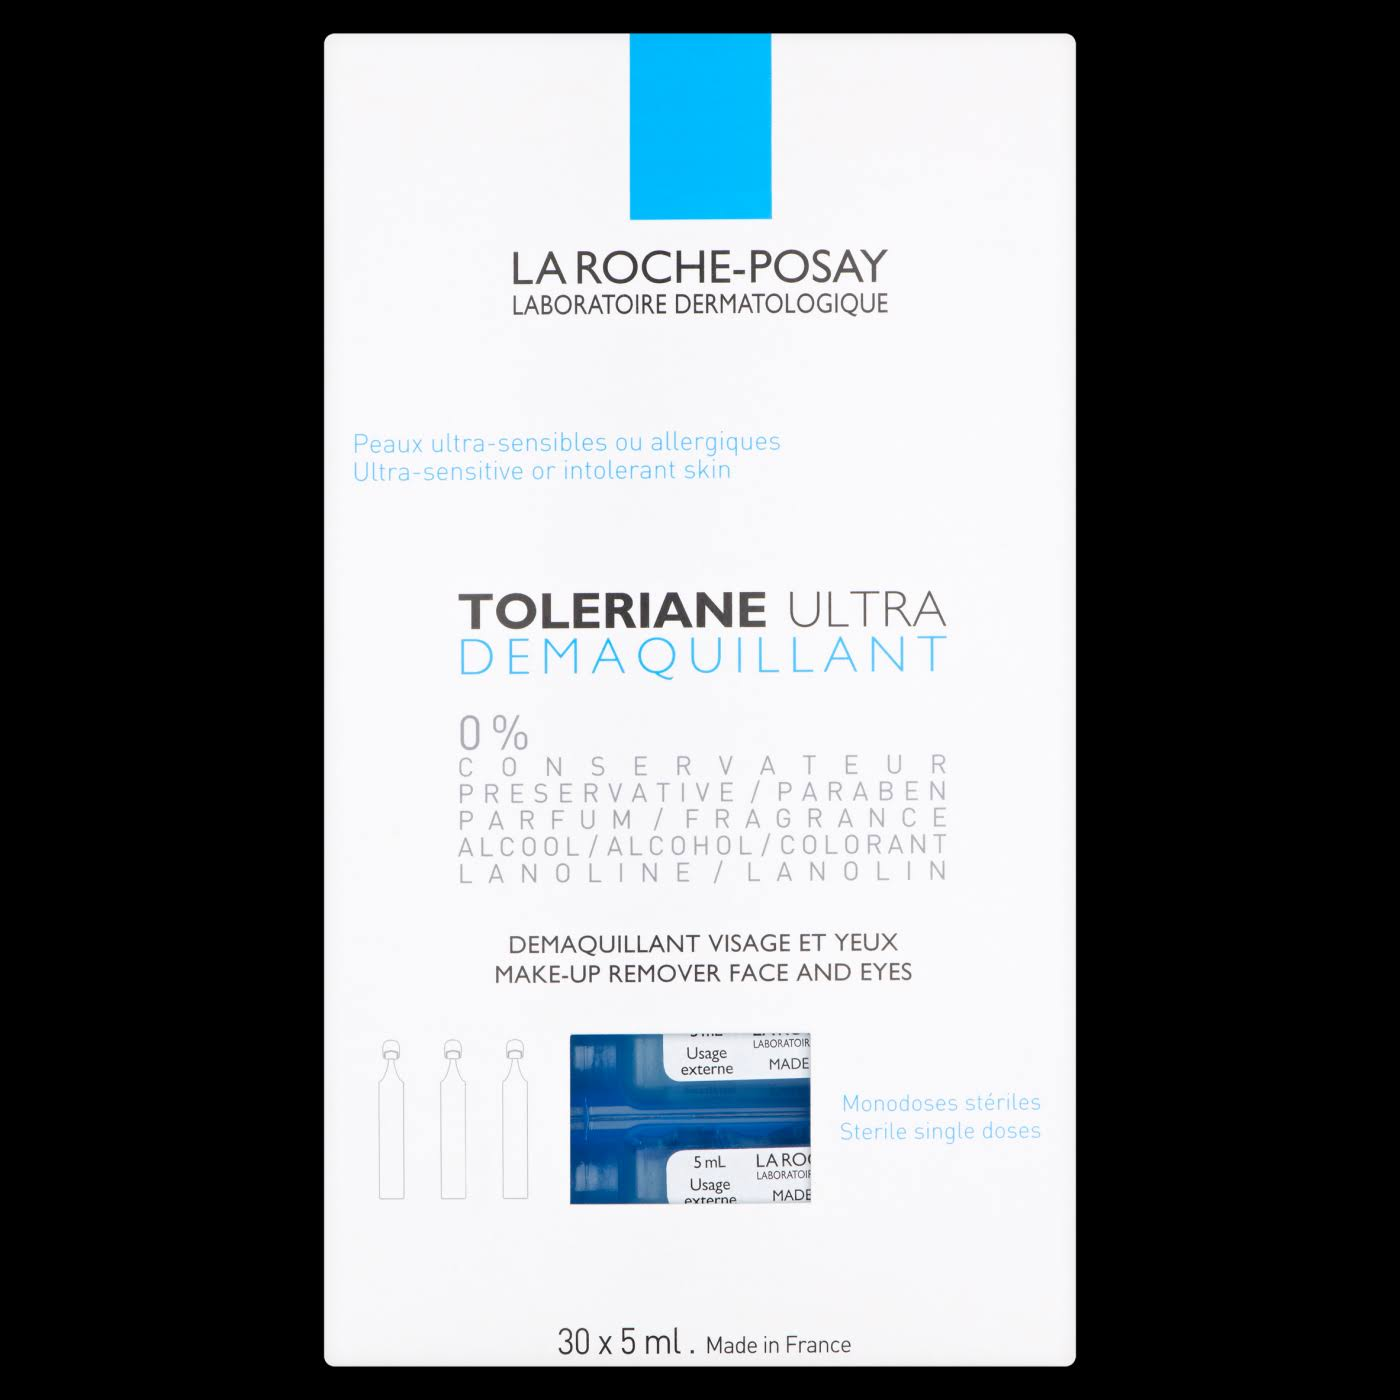 La Roche-Posay Toleriane Monodose Eye Make-Up Remover - 30 x 5ml